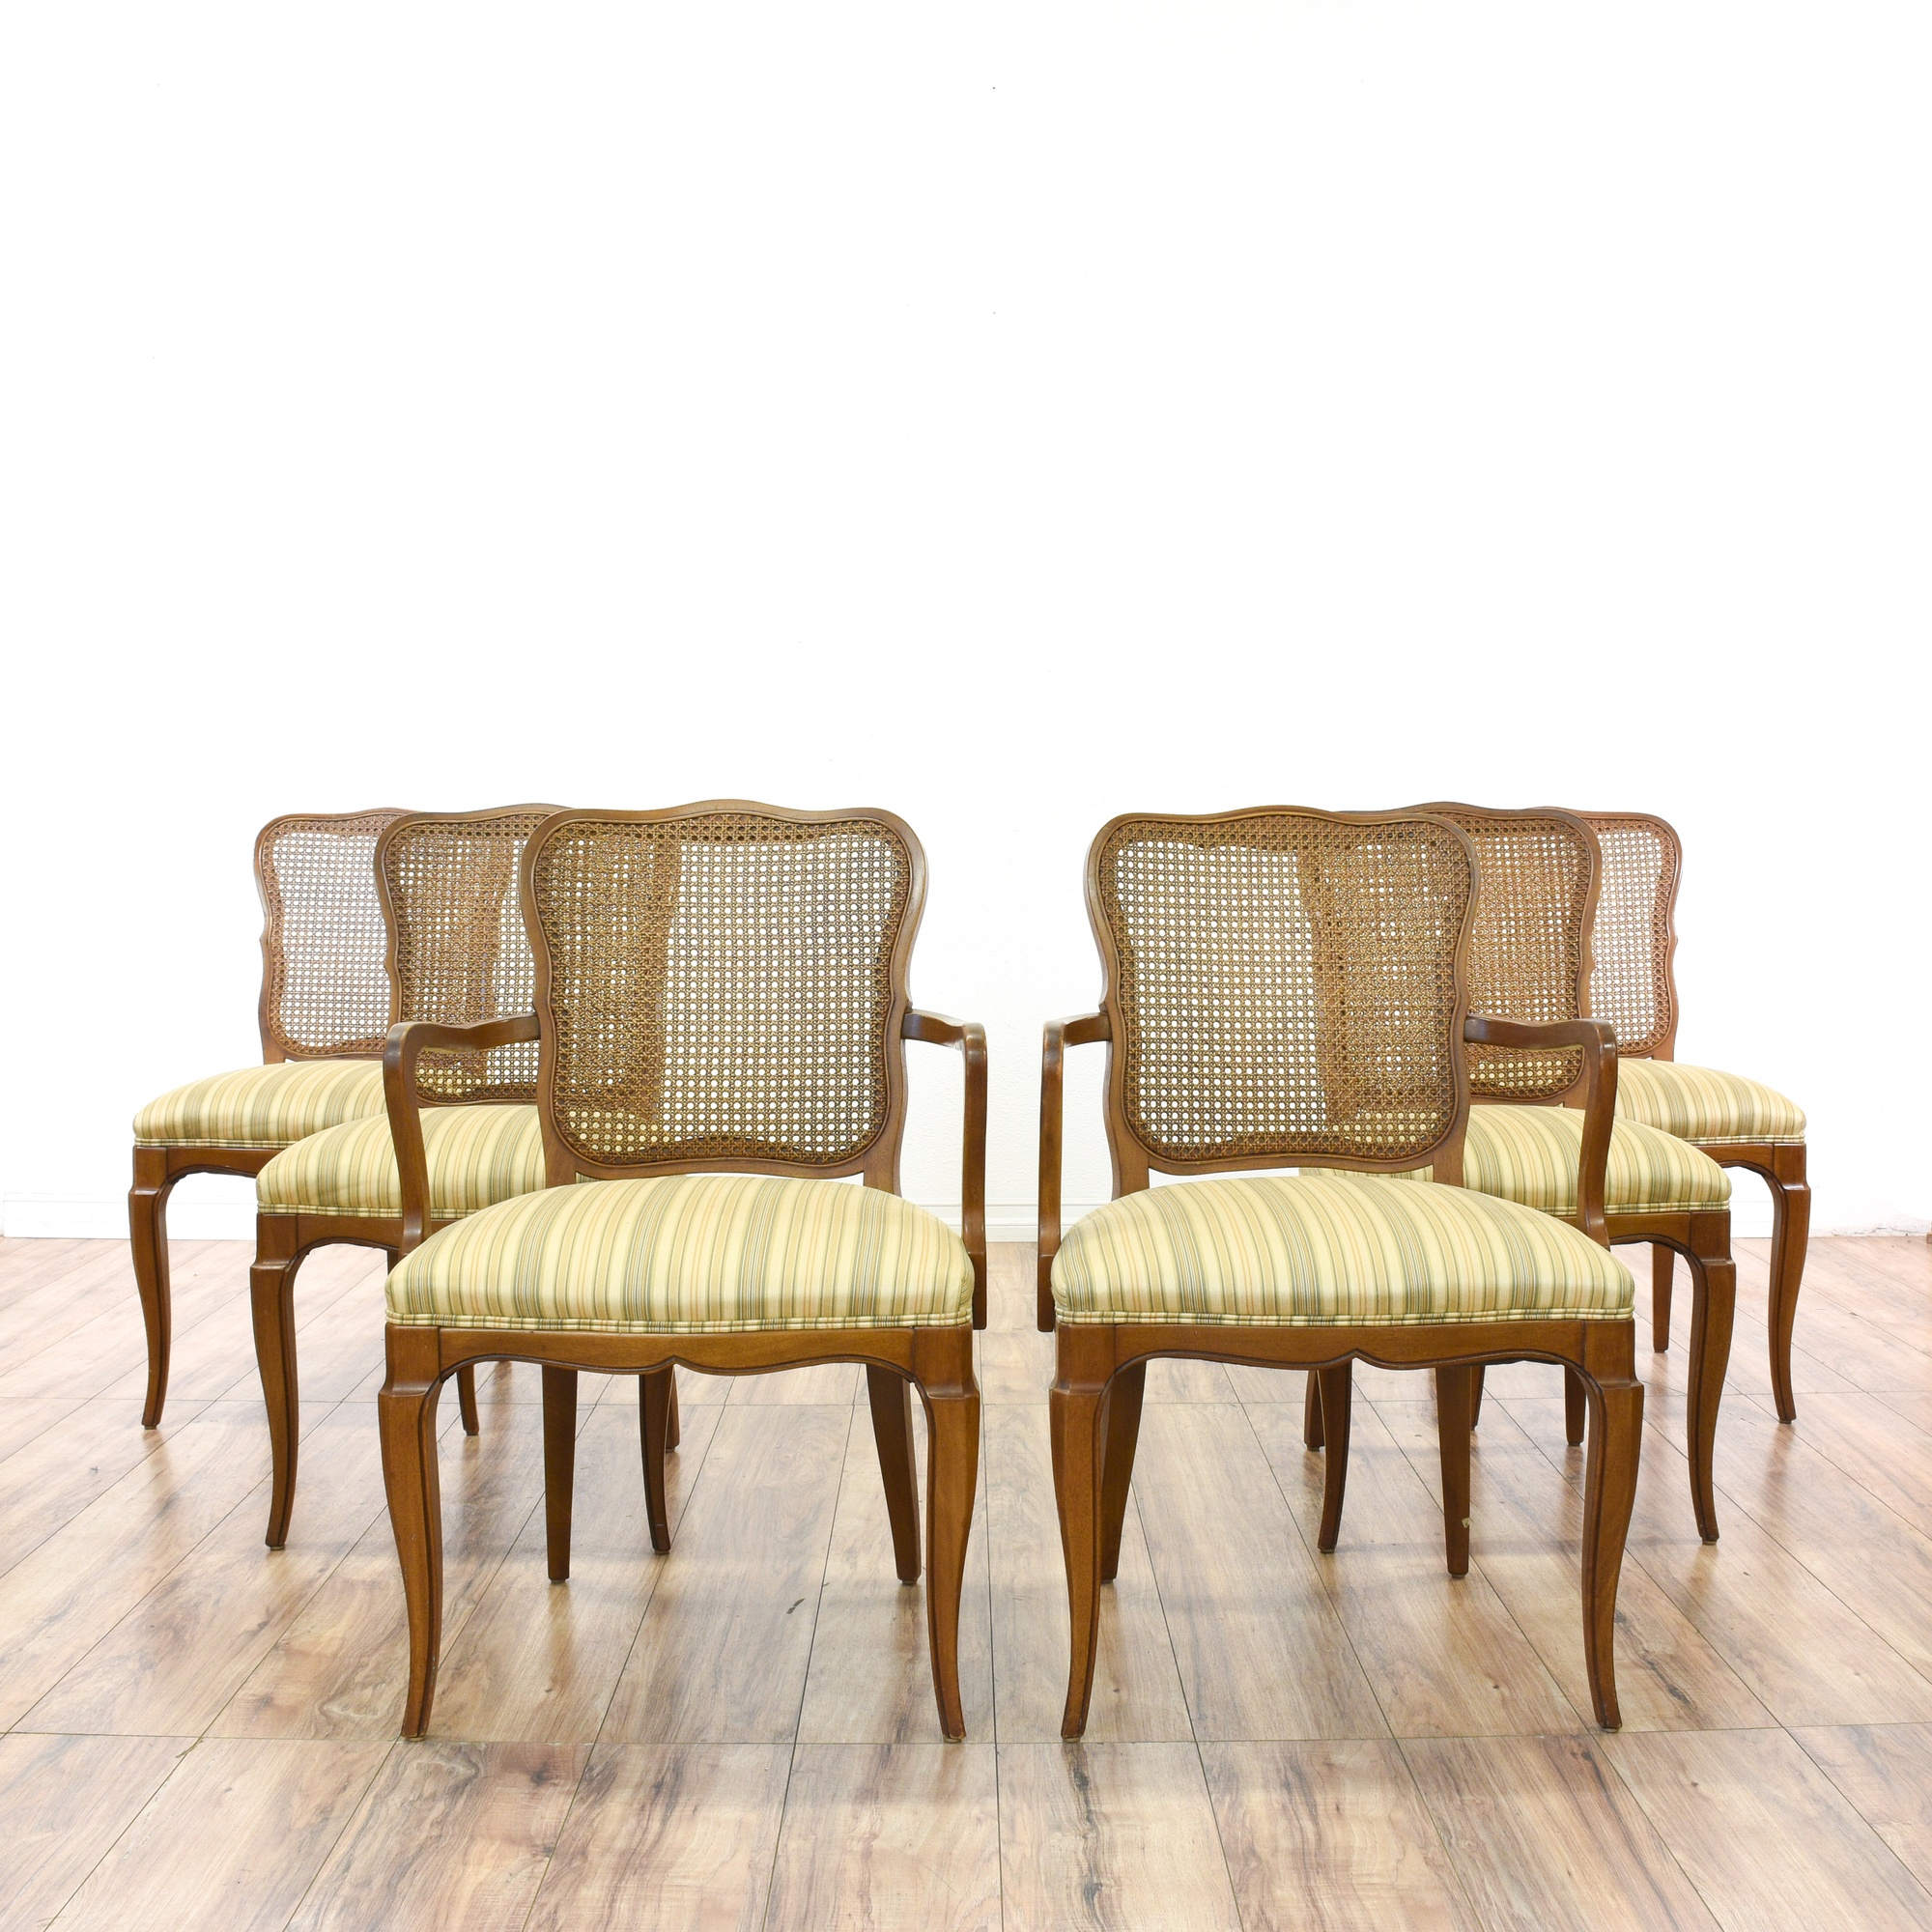 Set Of 6 R Way Striped Upholstered Dining Chairs Loveseat Online Auctions San Diego